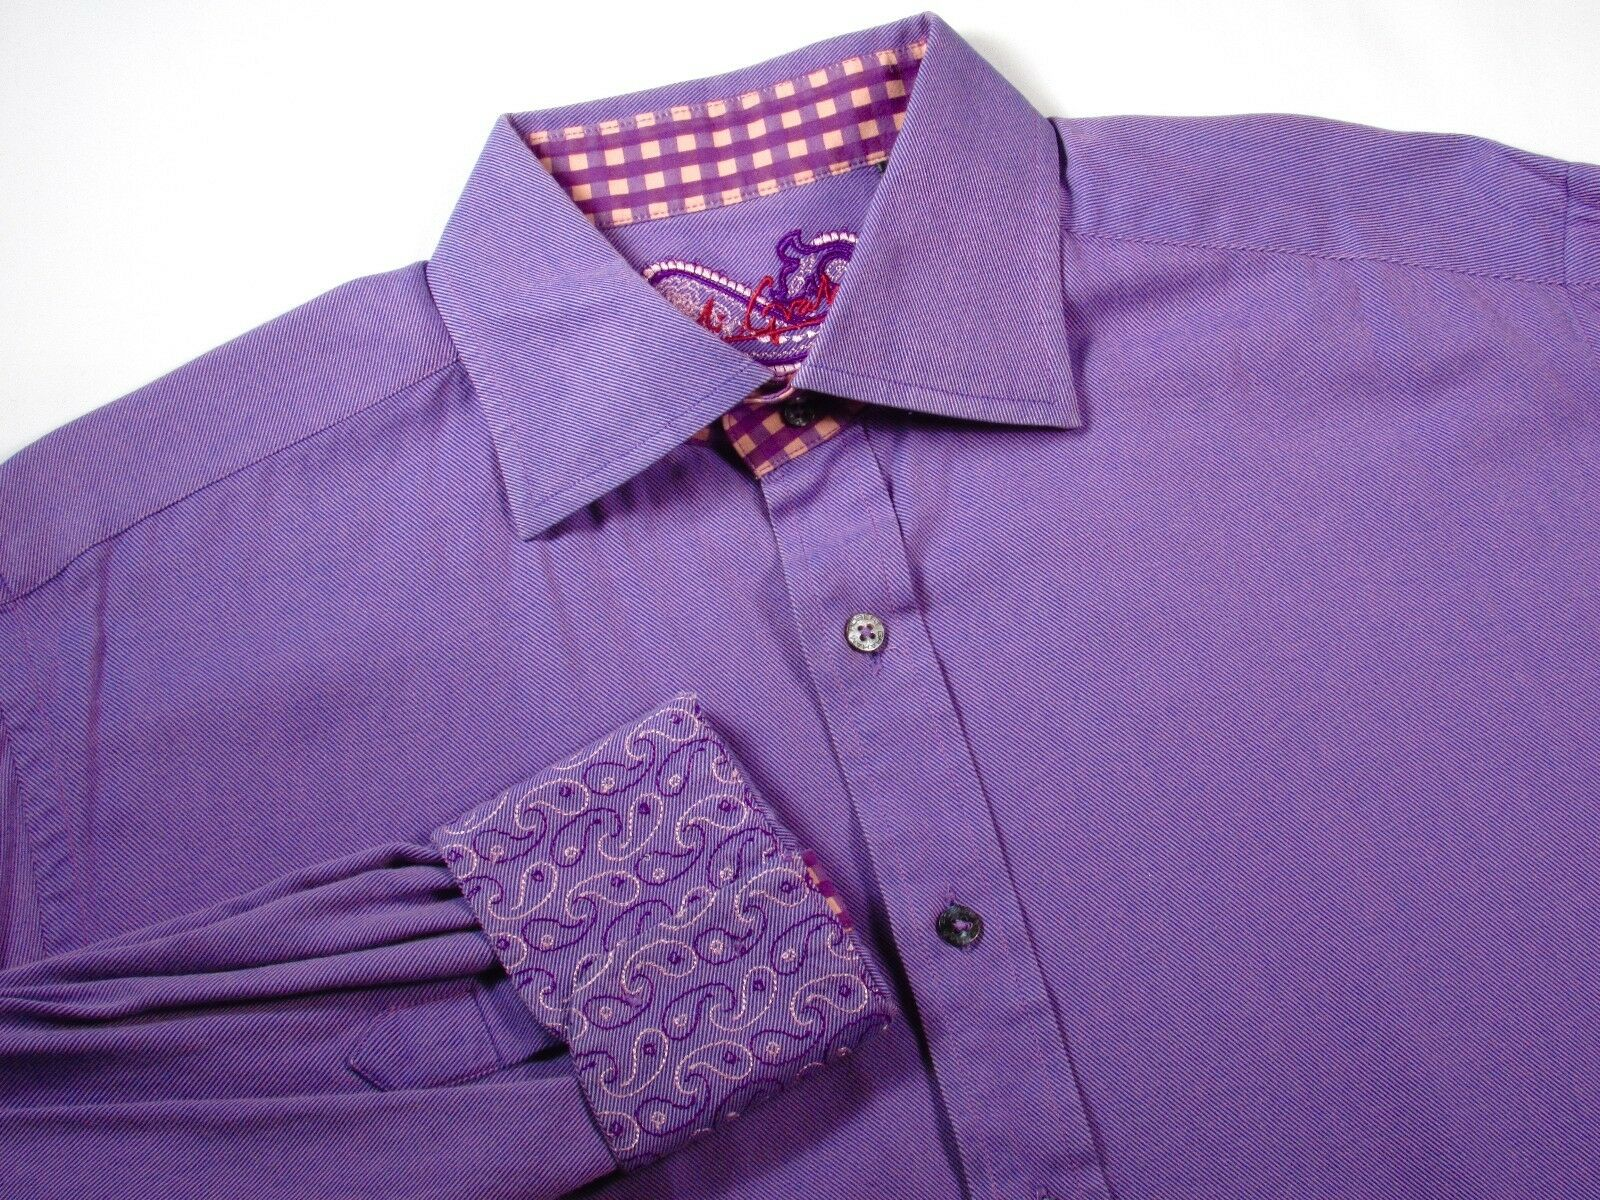 ROBERT GRAHAM - Mens XL - Nordstrom Dress Casual Shirt Vivid Purple Prince GIFT